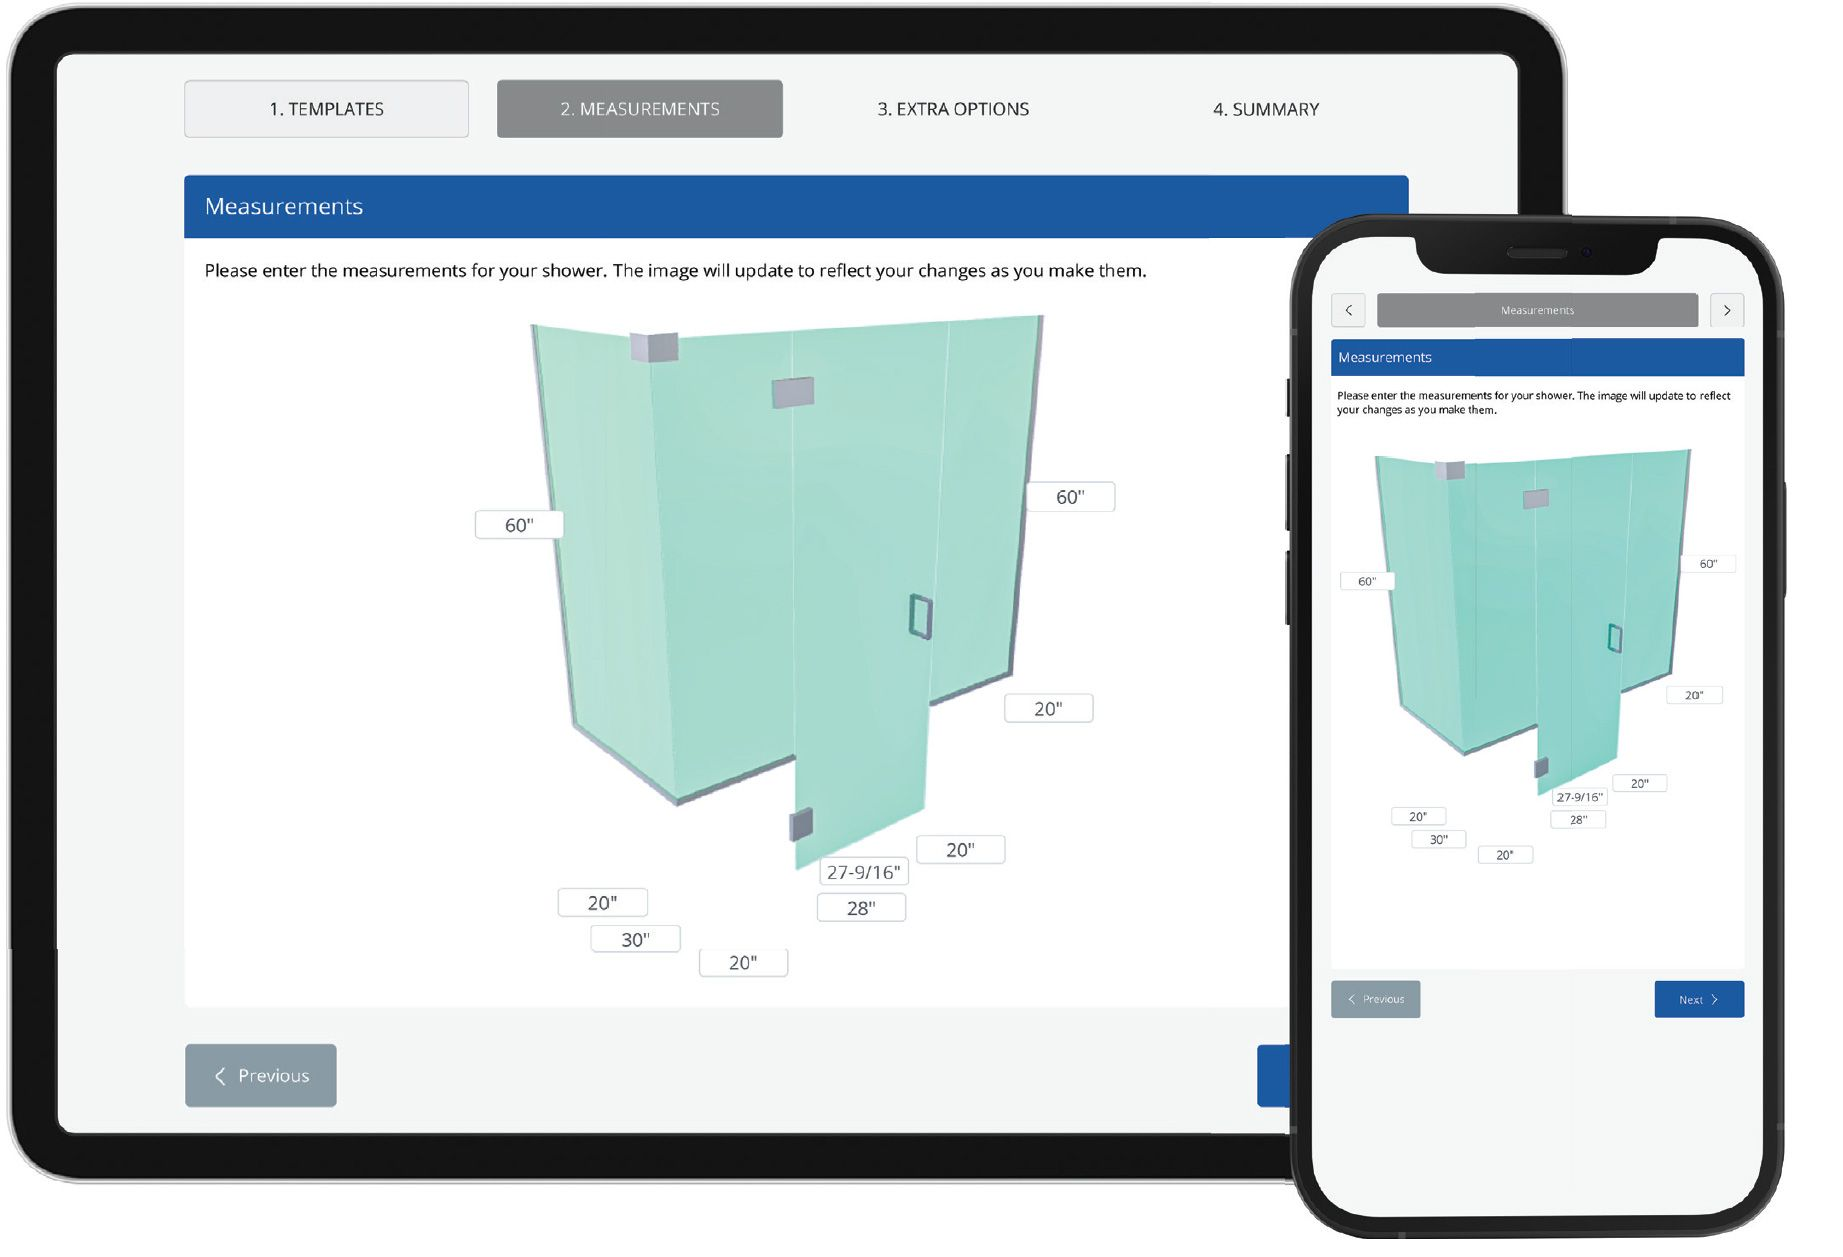 Glass shop management Software - Works on iPad